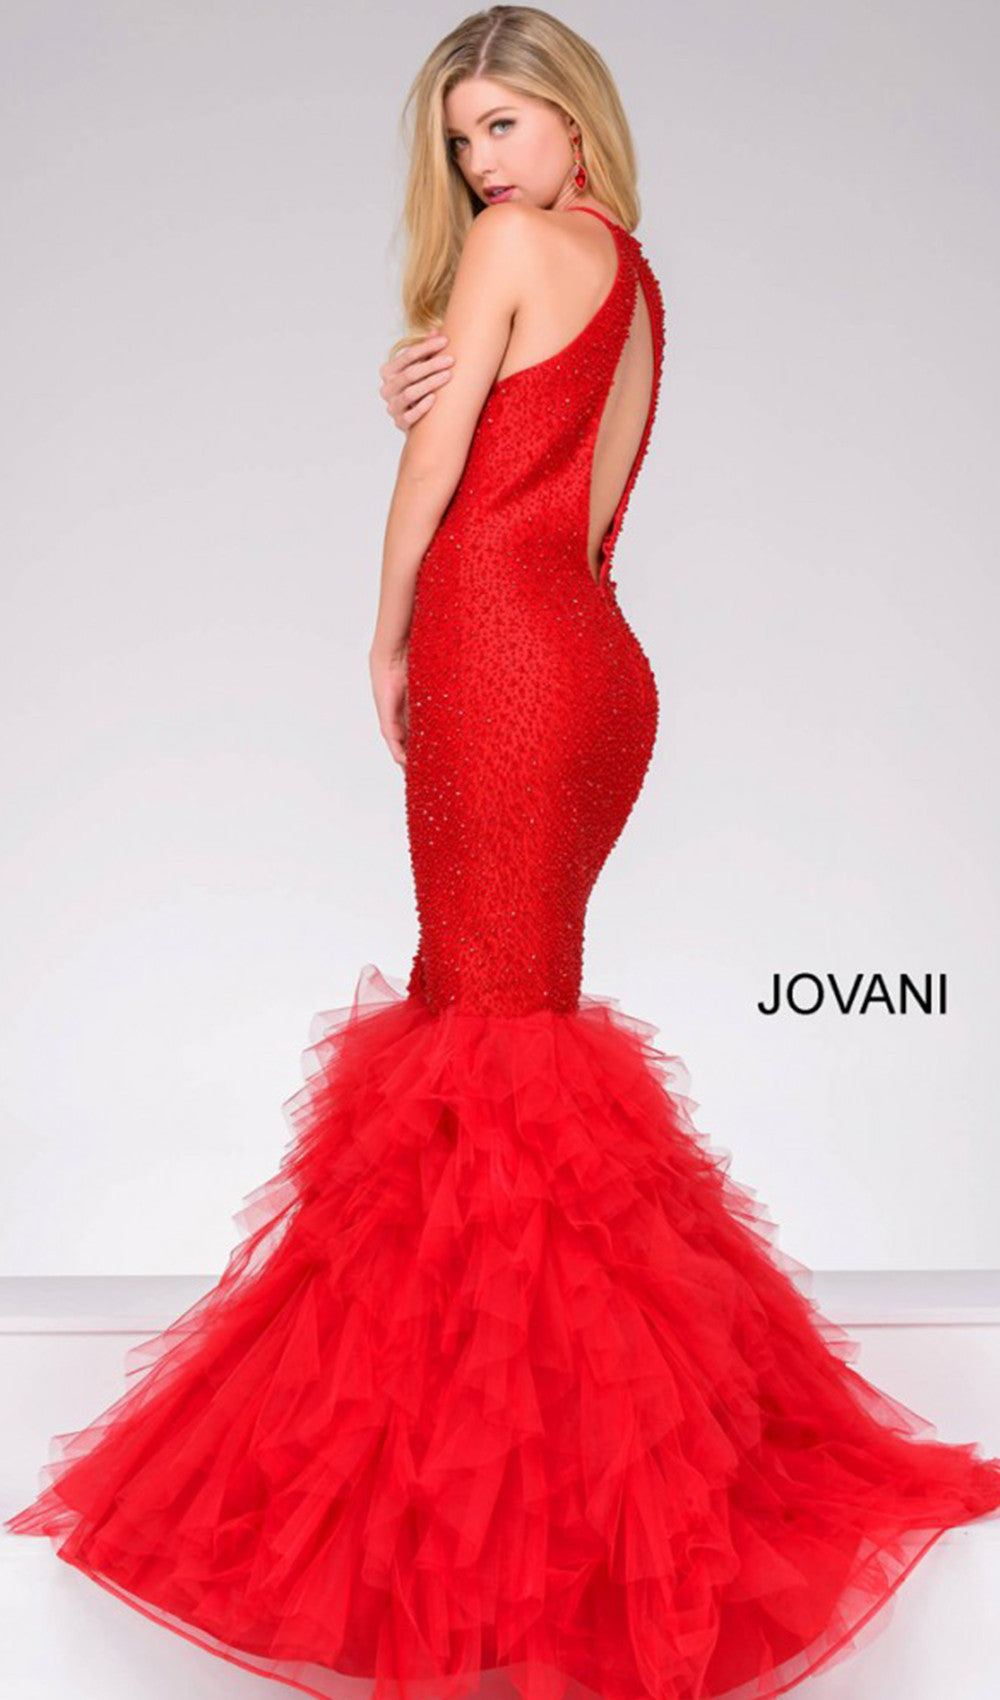 Fabulous Modern Mermaid Dress | Jovani - STYLE 37473| Schaffer's Bridal in Des Moines, Iowa